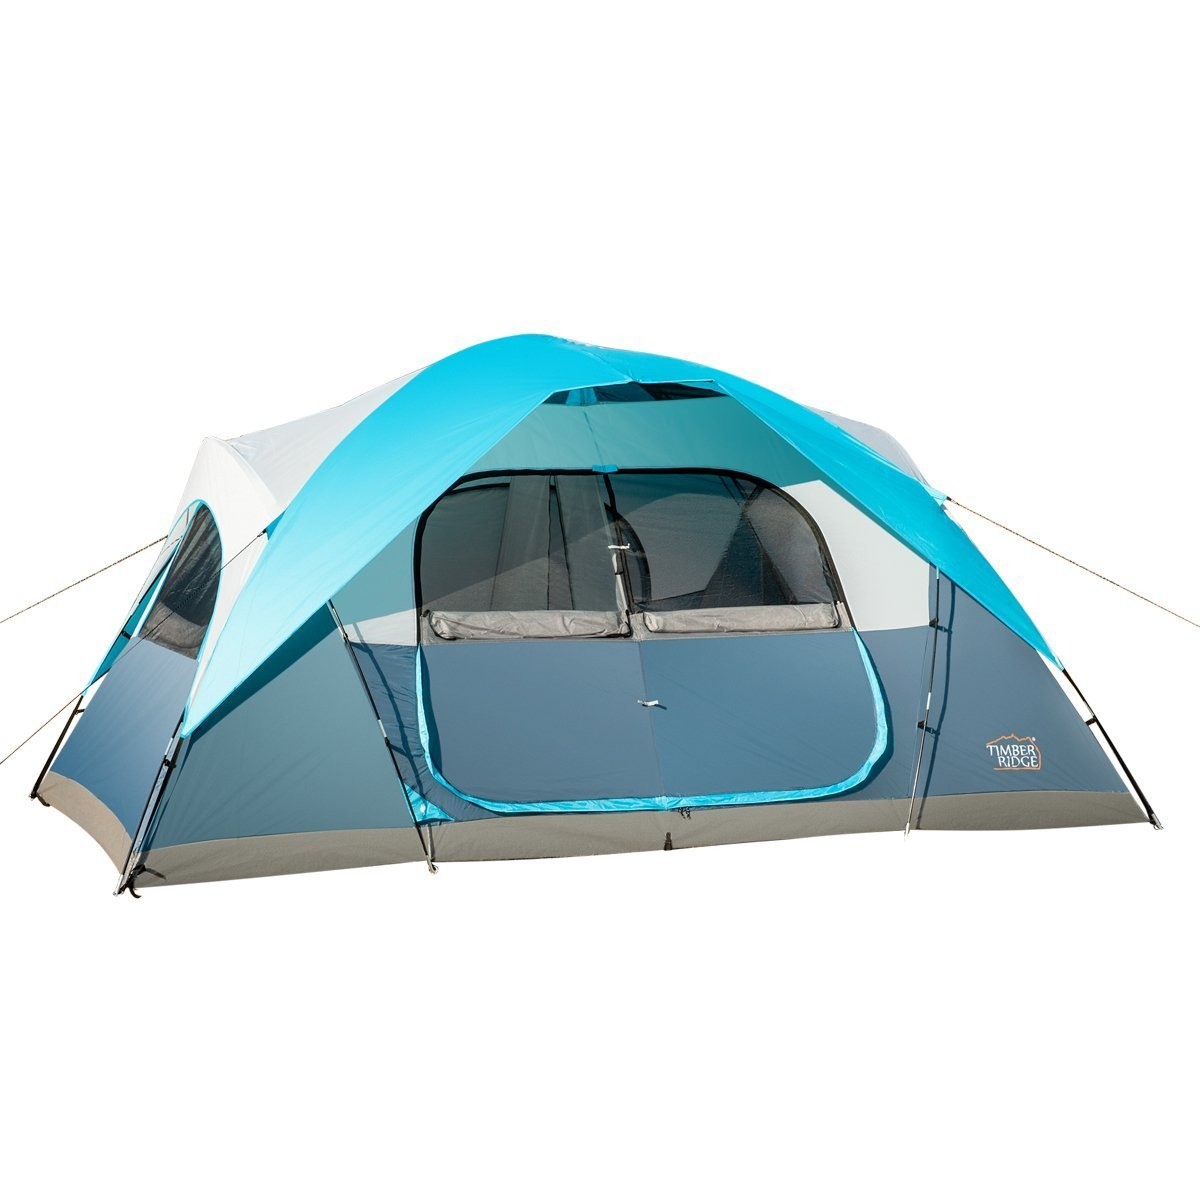 Top 10 Best 10 Person Tent 2021 For The Money Reviews 10